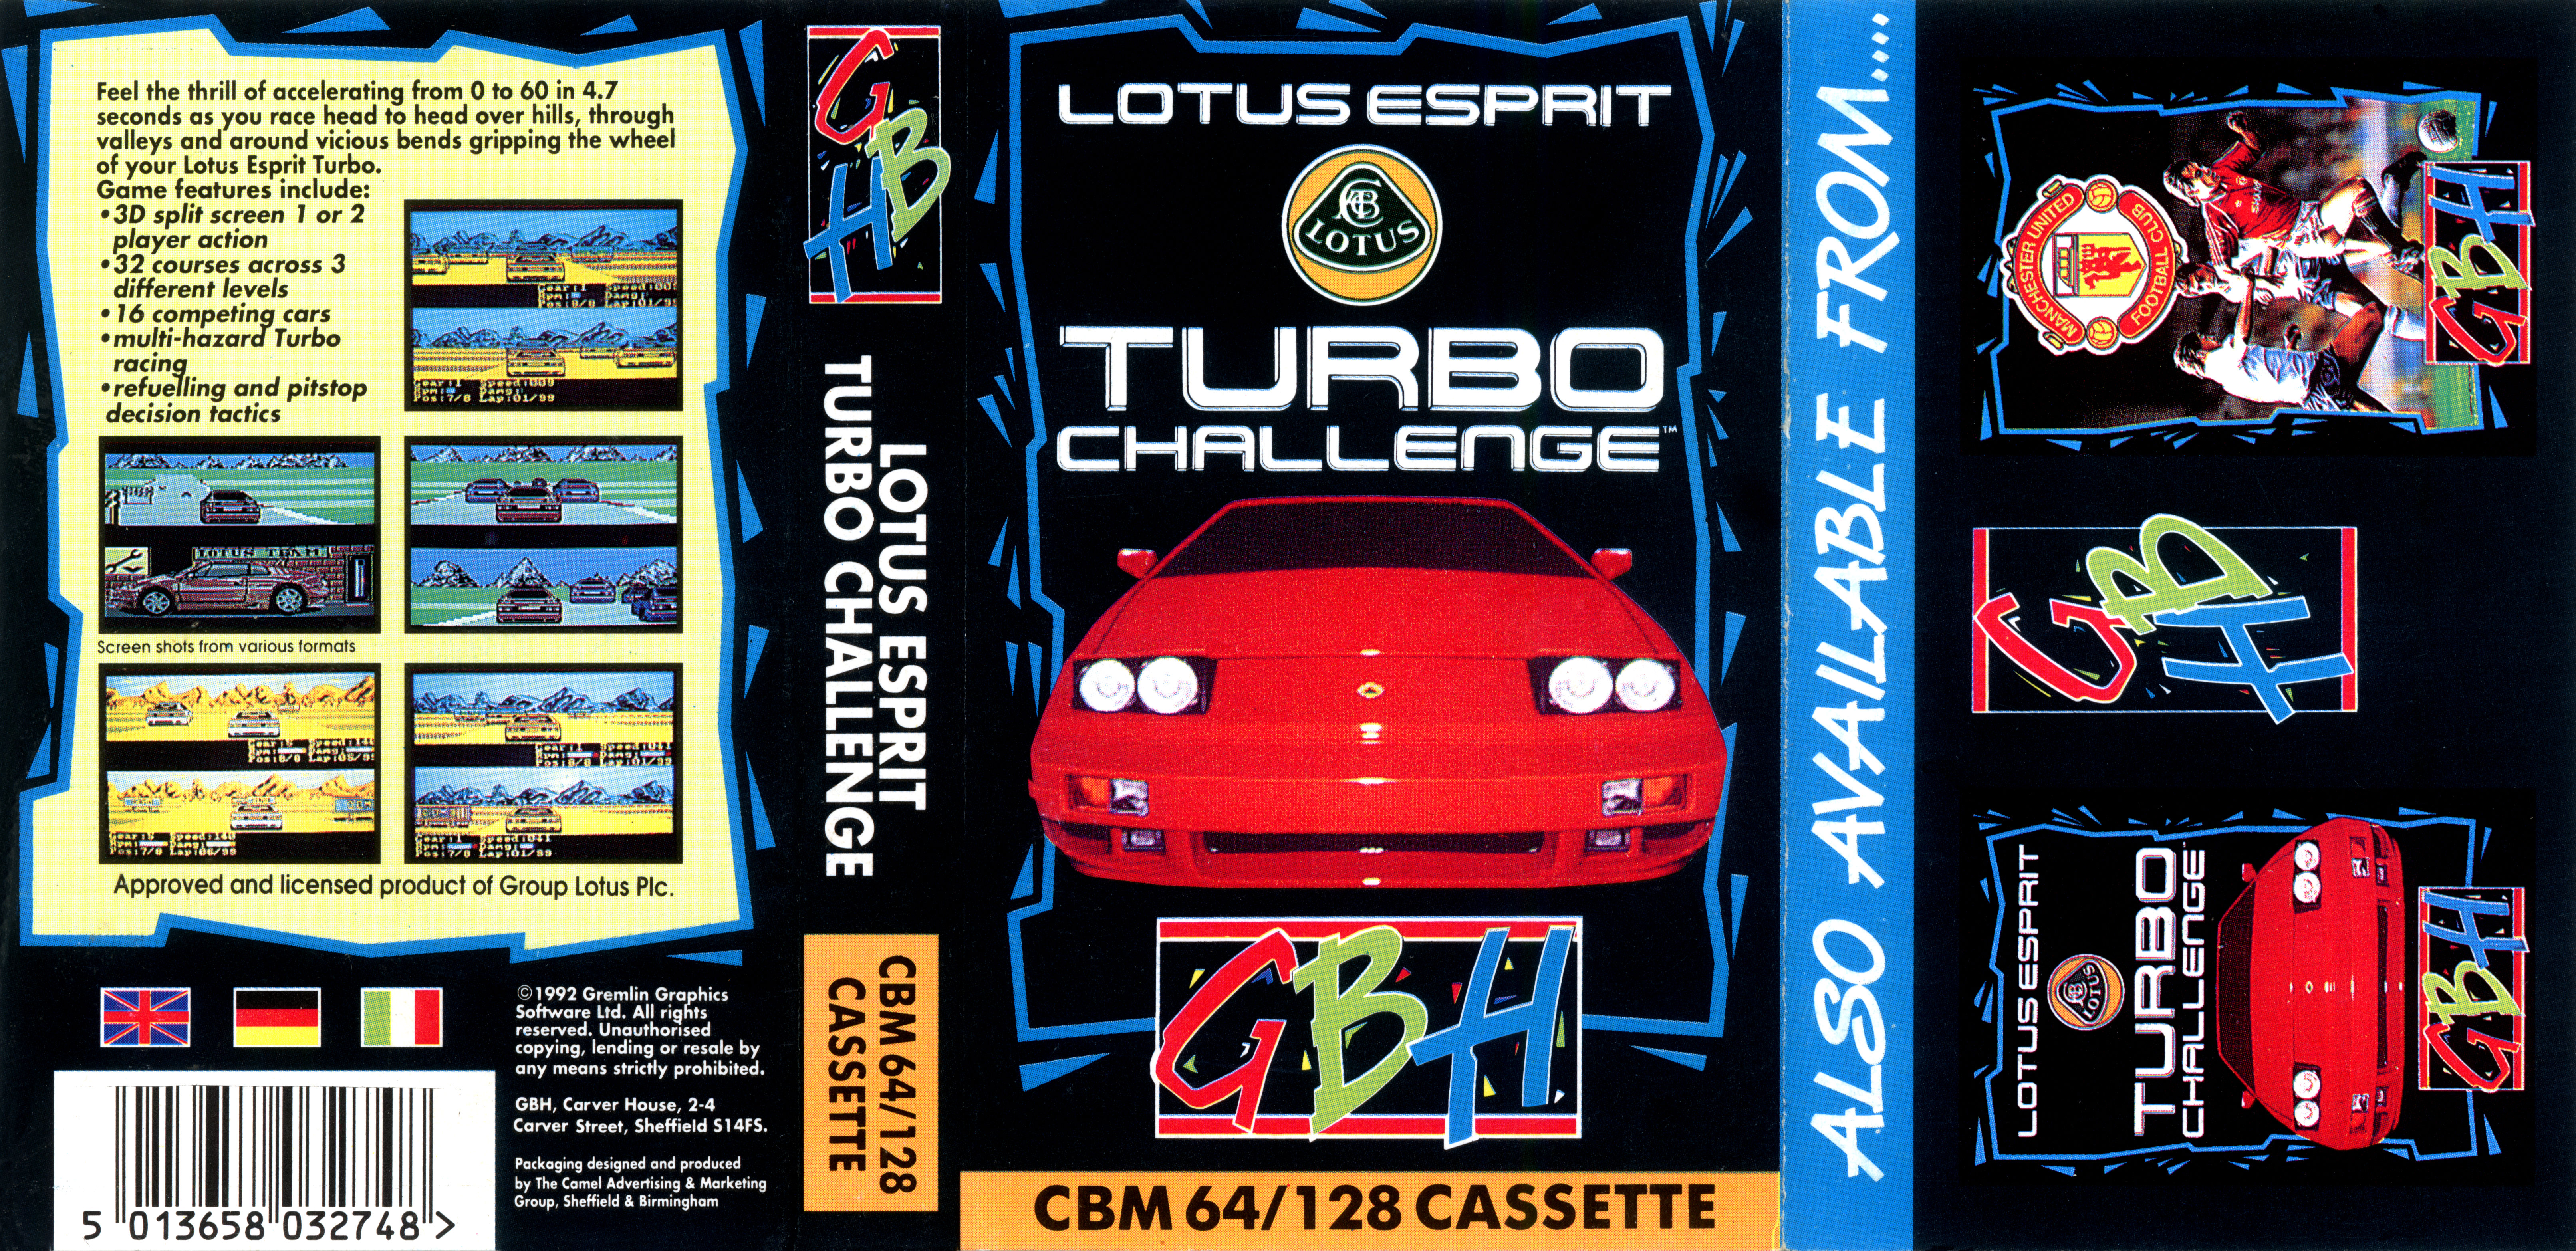 coupon code special section more photos Lotus Esprit Turbo Challenge (19xx Gremlin Graphics (GBH ...